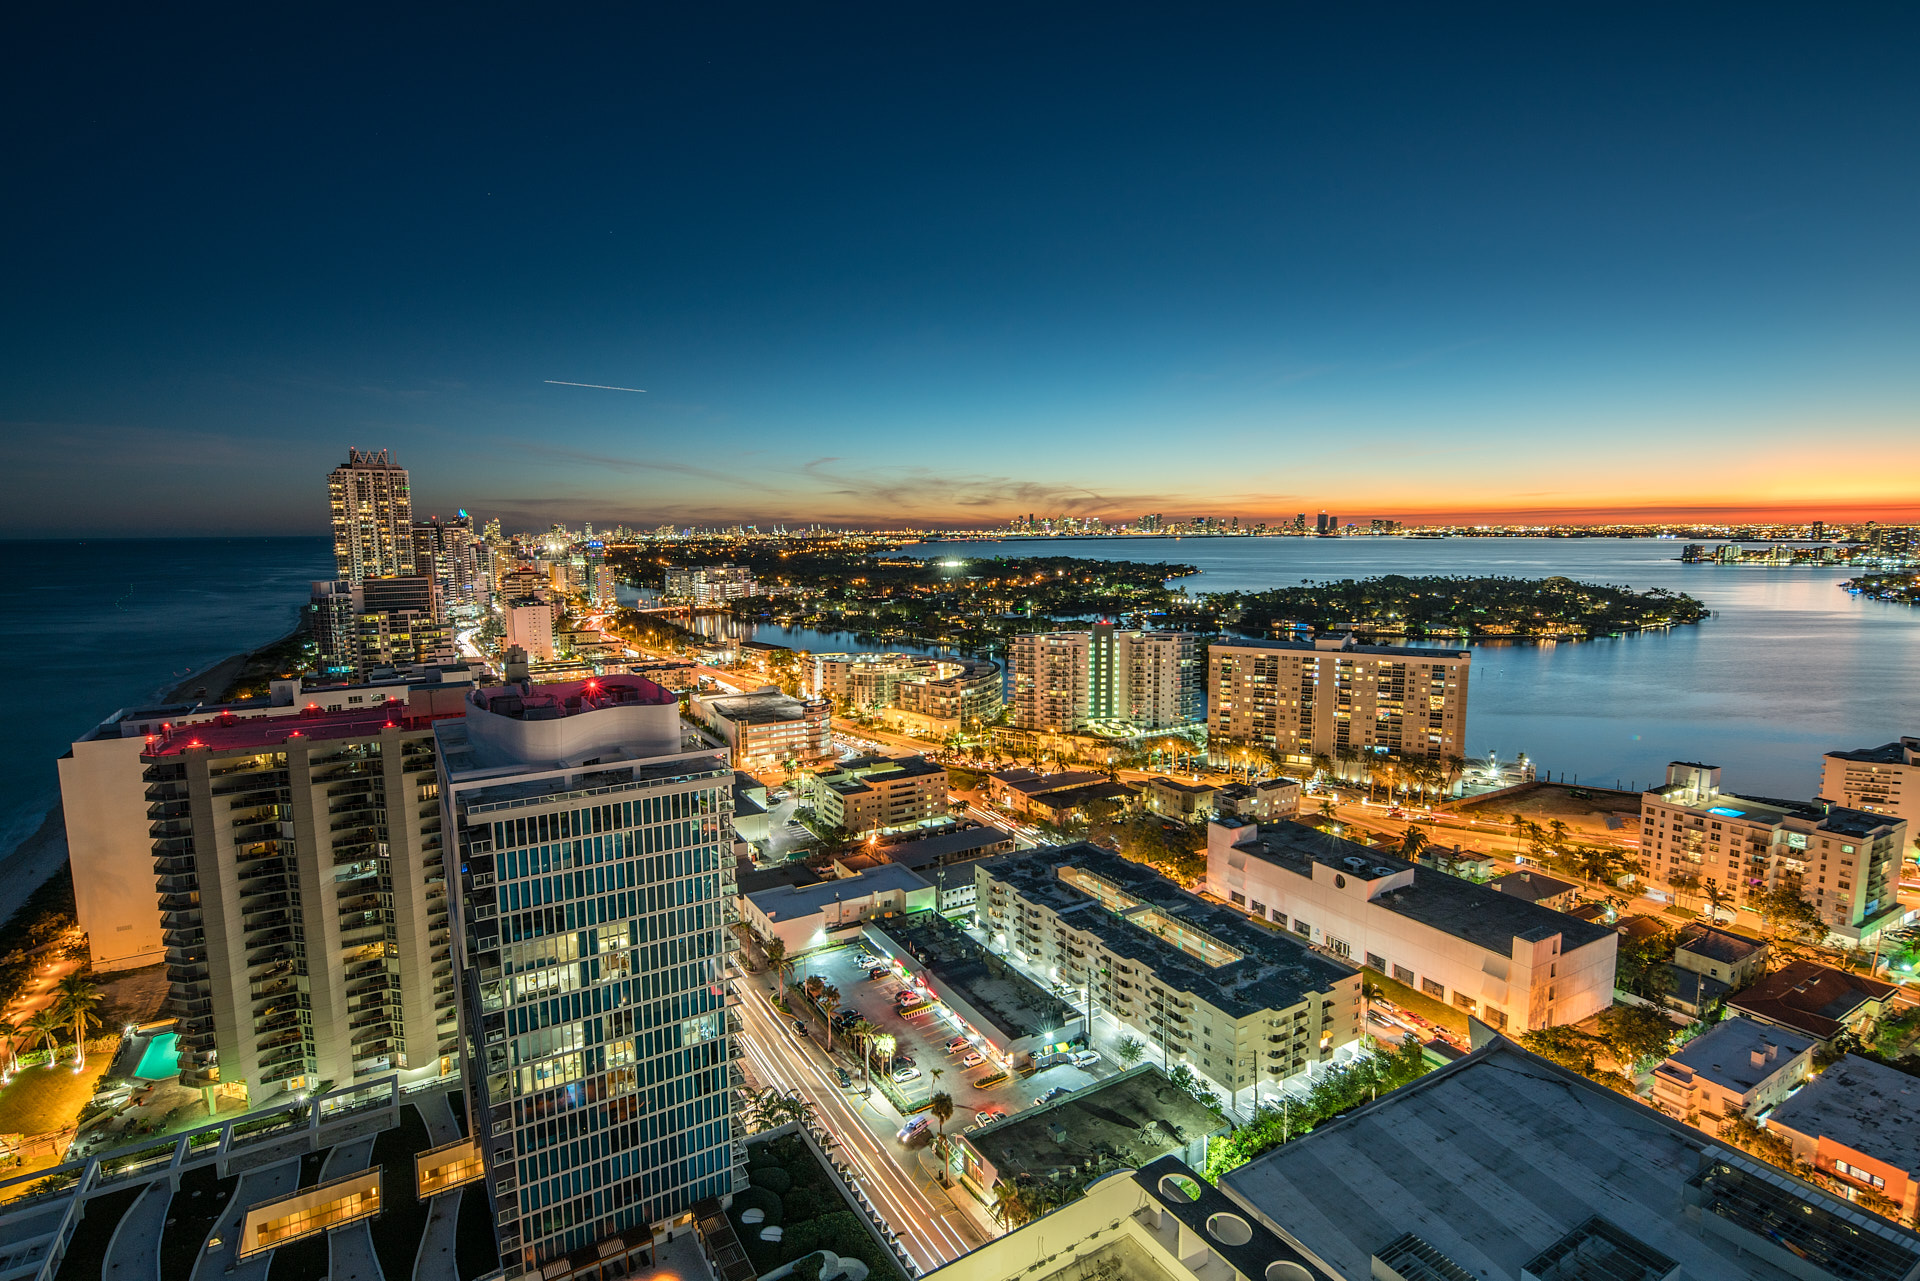 City view of Miami